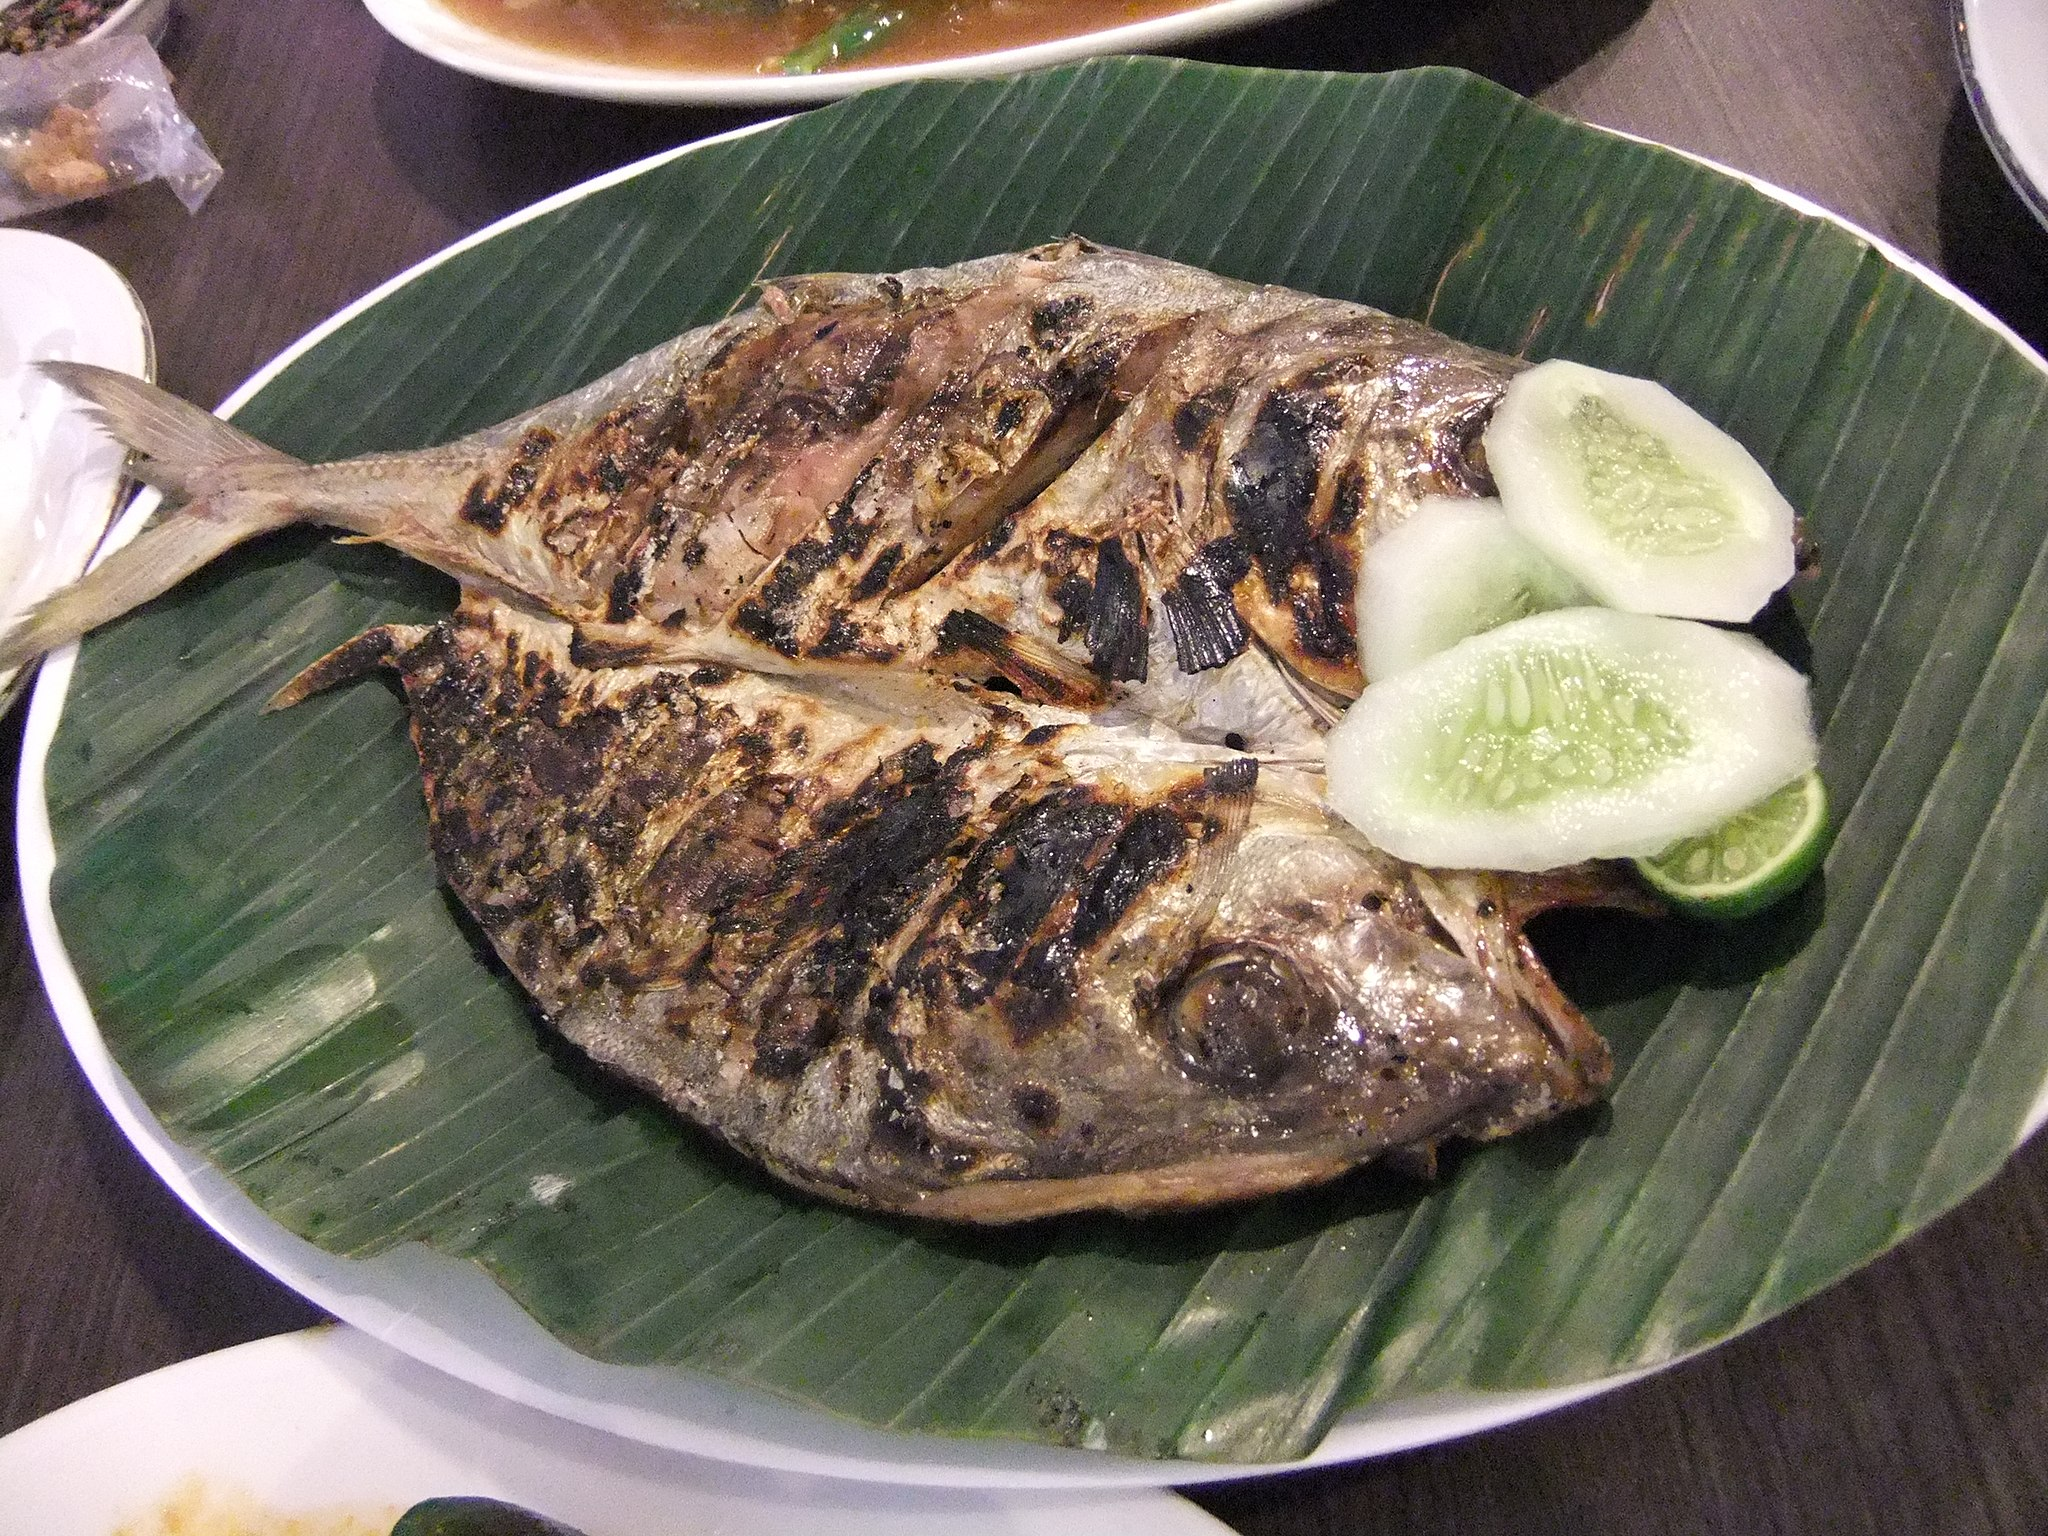 Grilled fish garnished with cucumber slices